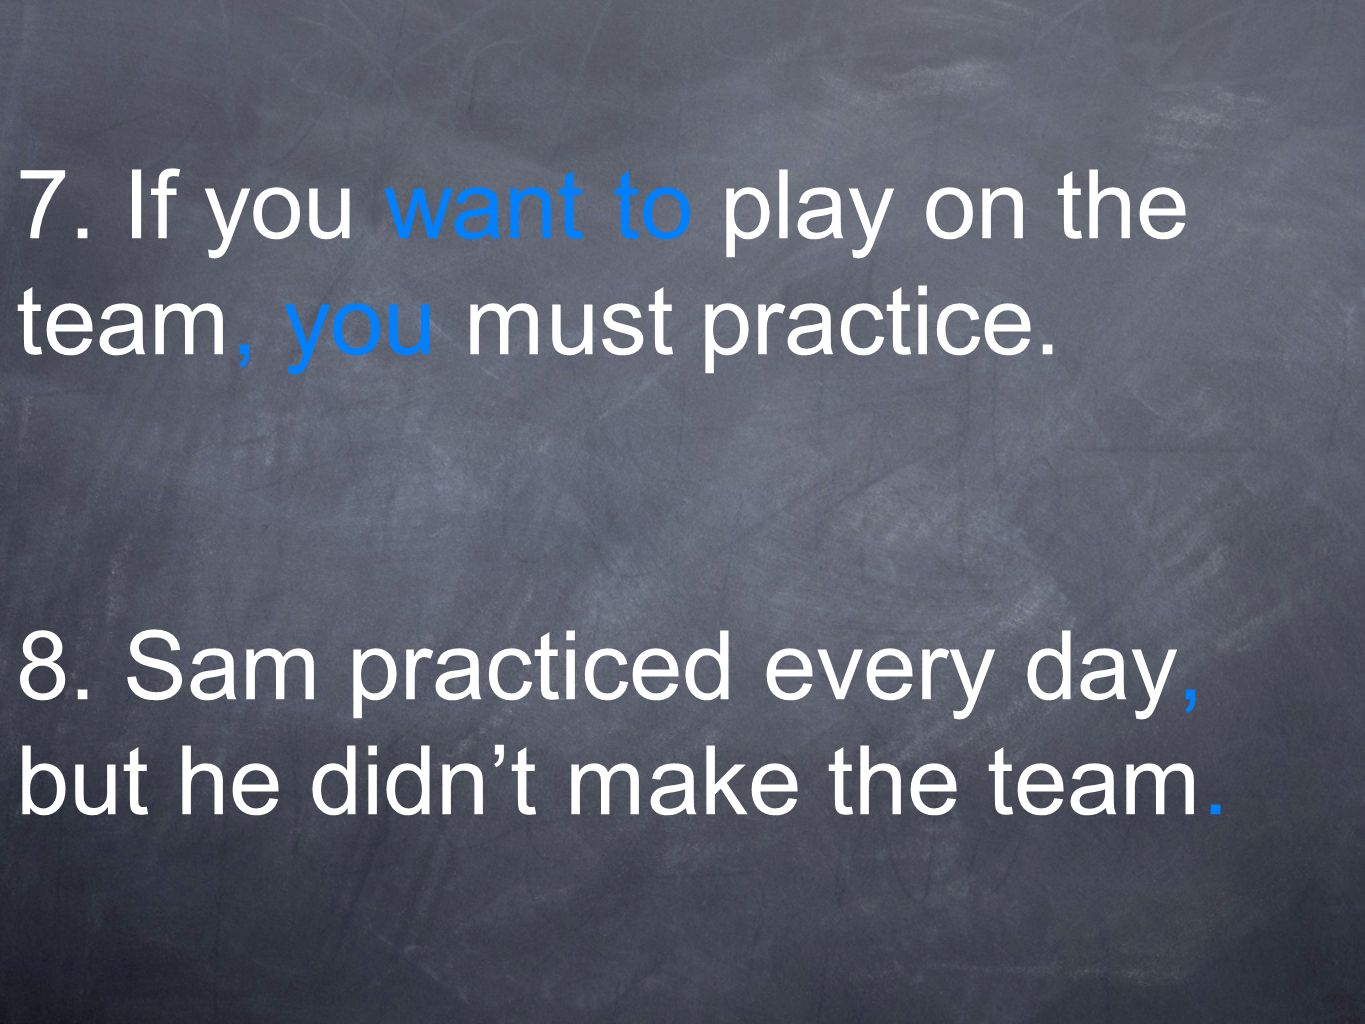 7.If you want to play on the team, you must practice.